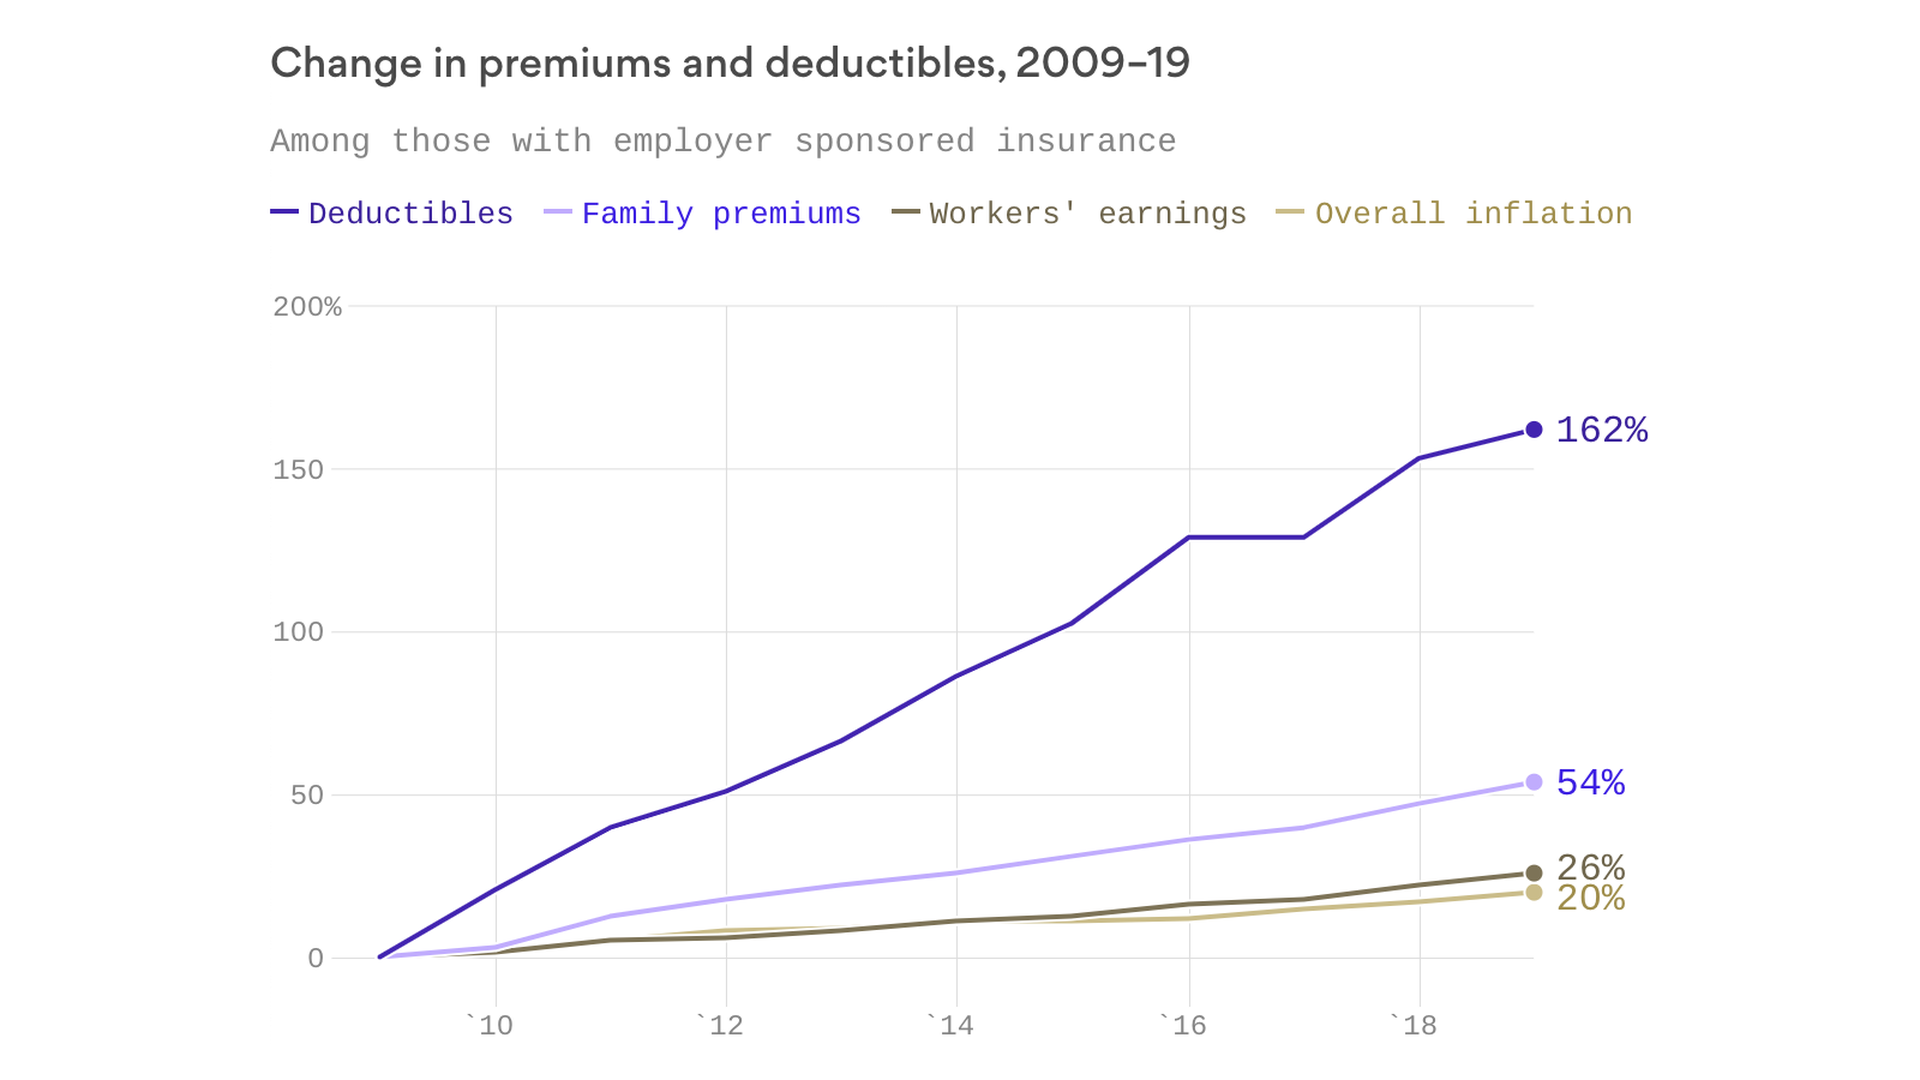 Employer-sponsored deductibles soared 162% as workers' earnings rose 26% over the last decade